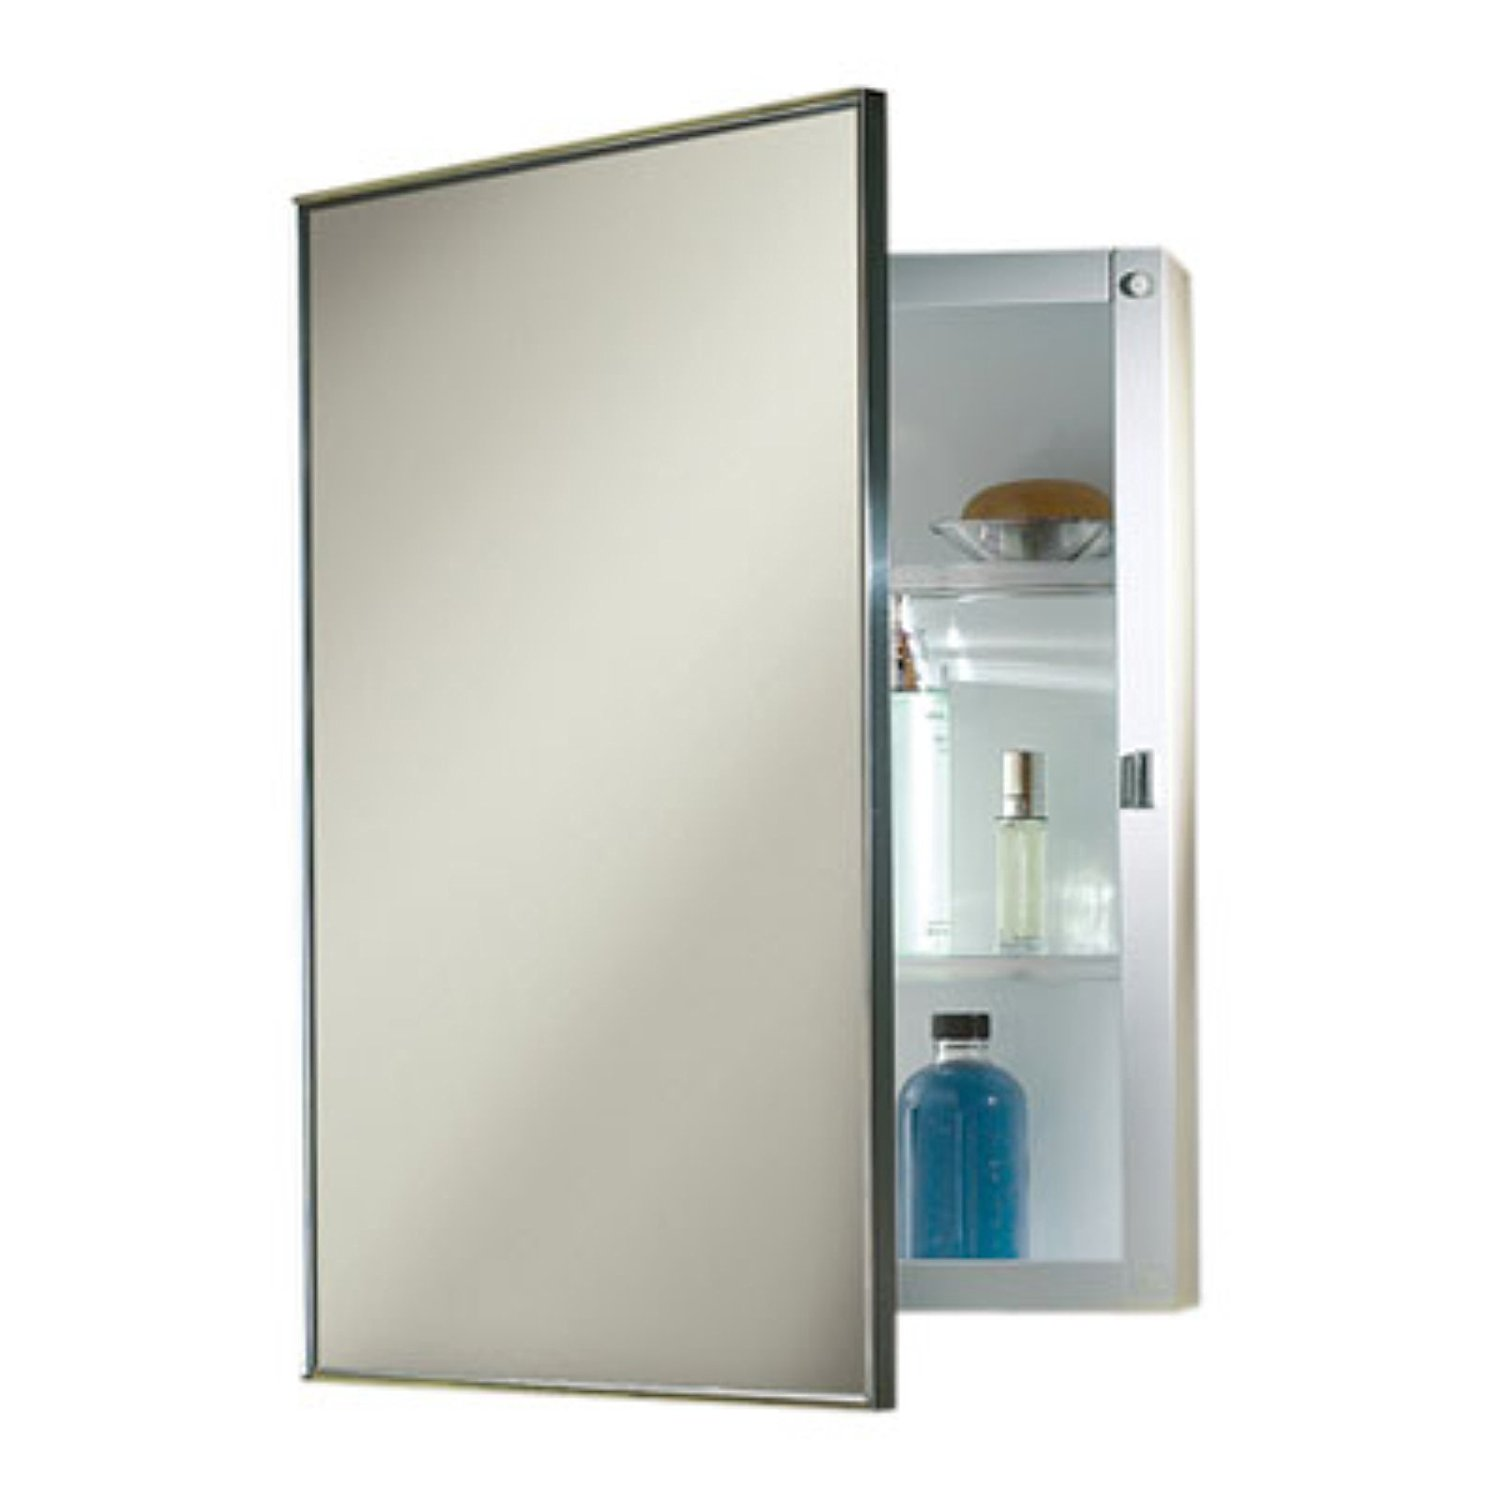 Replacement Cabinet Shelves | Jensen Medicine Cabinets | Lowes Bathroom Medicine Cabinets